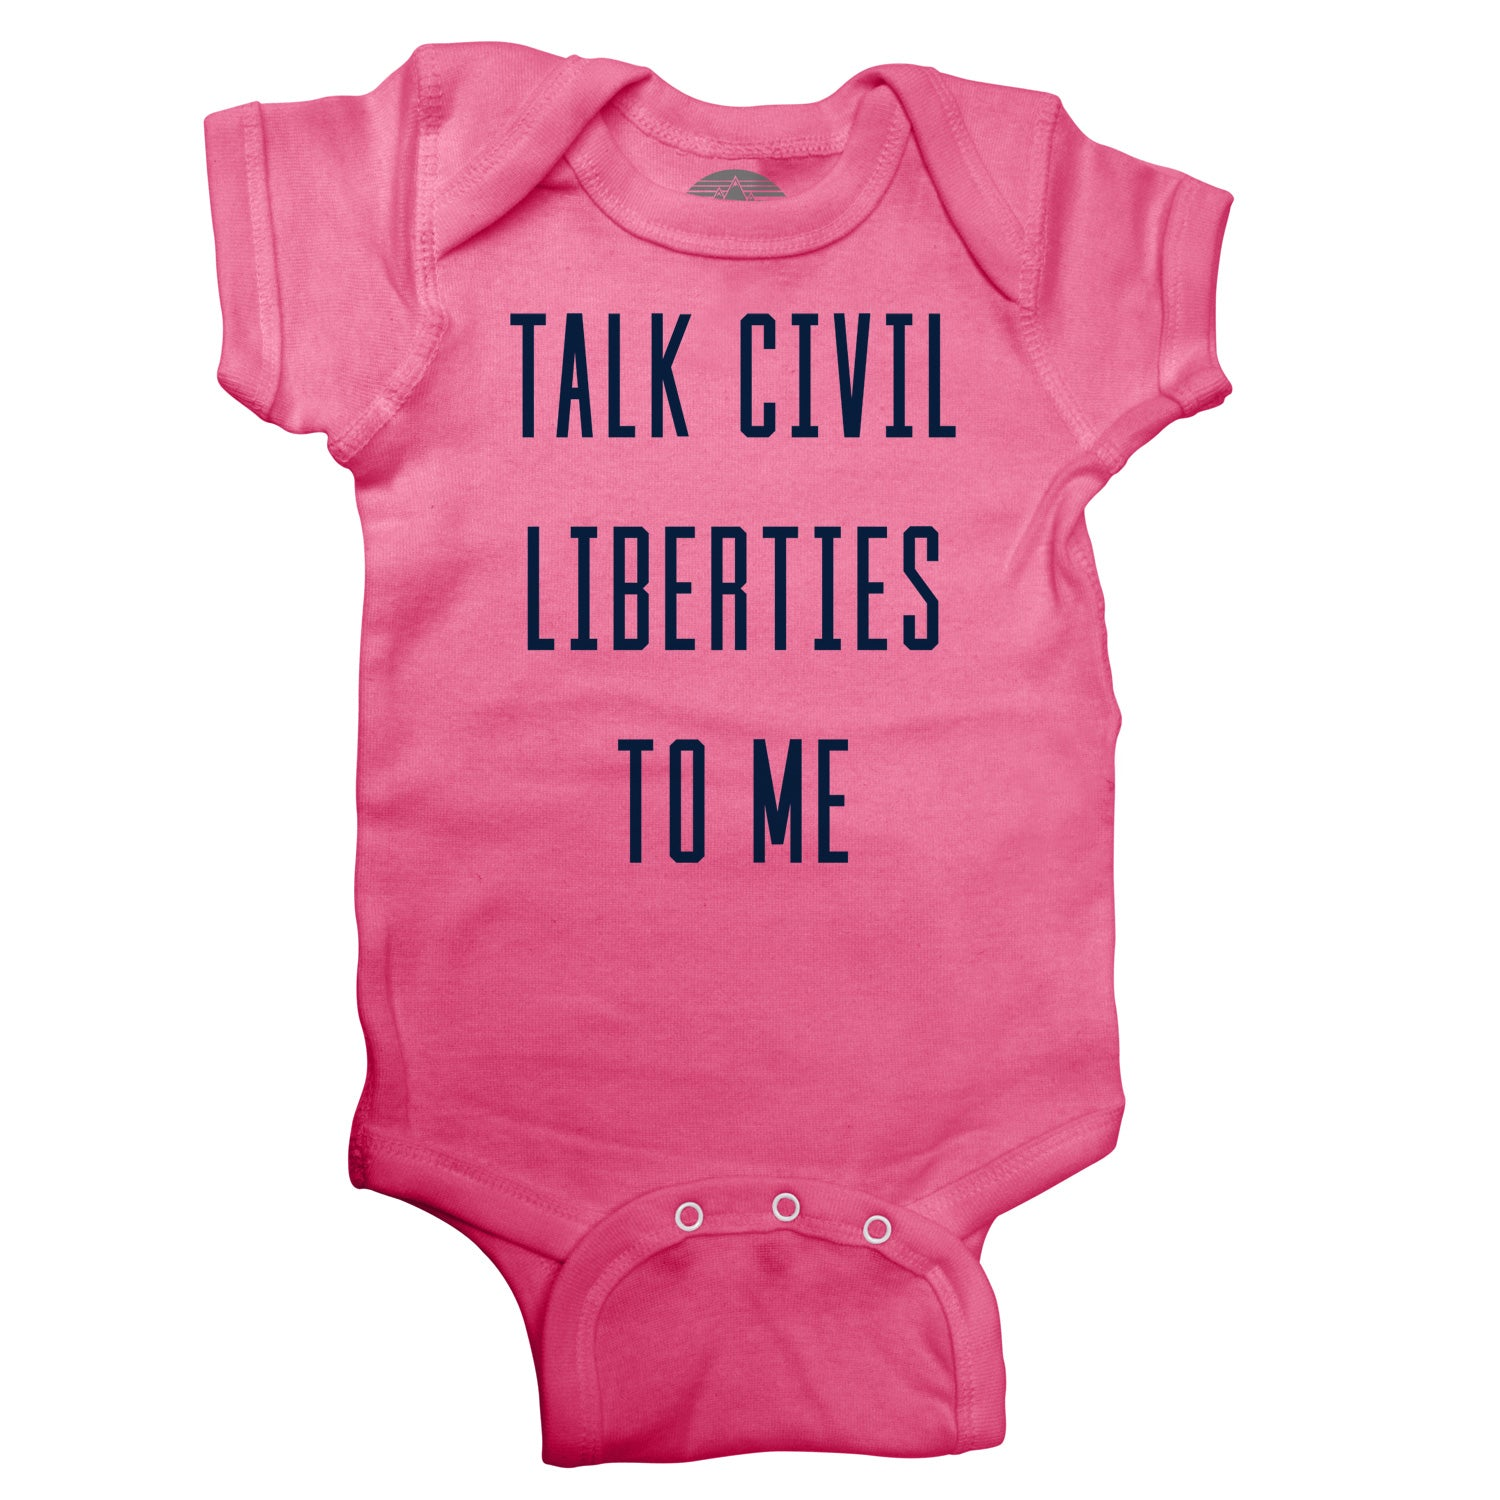 Talk Civil Liberties to Me Infant Bodysuit - Unisex Fit